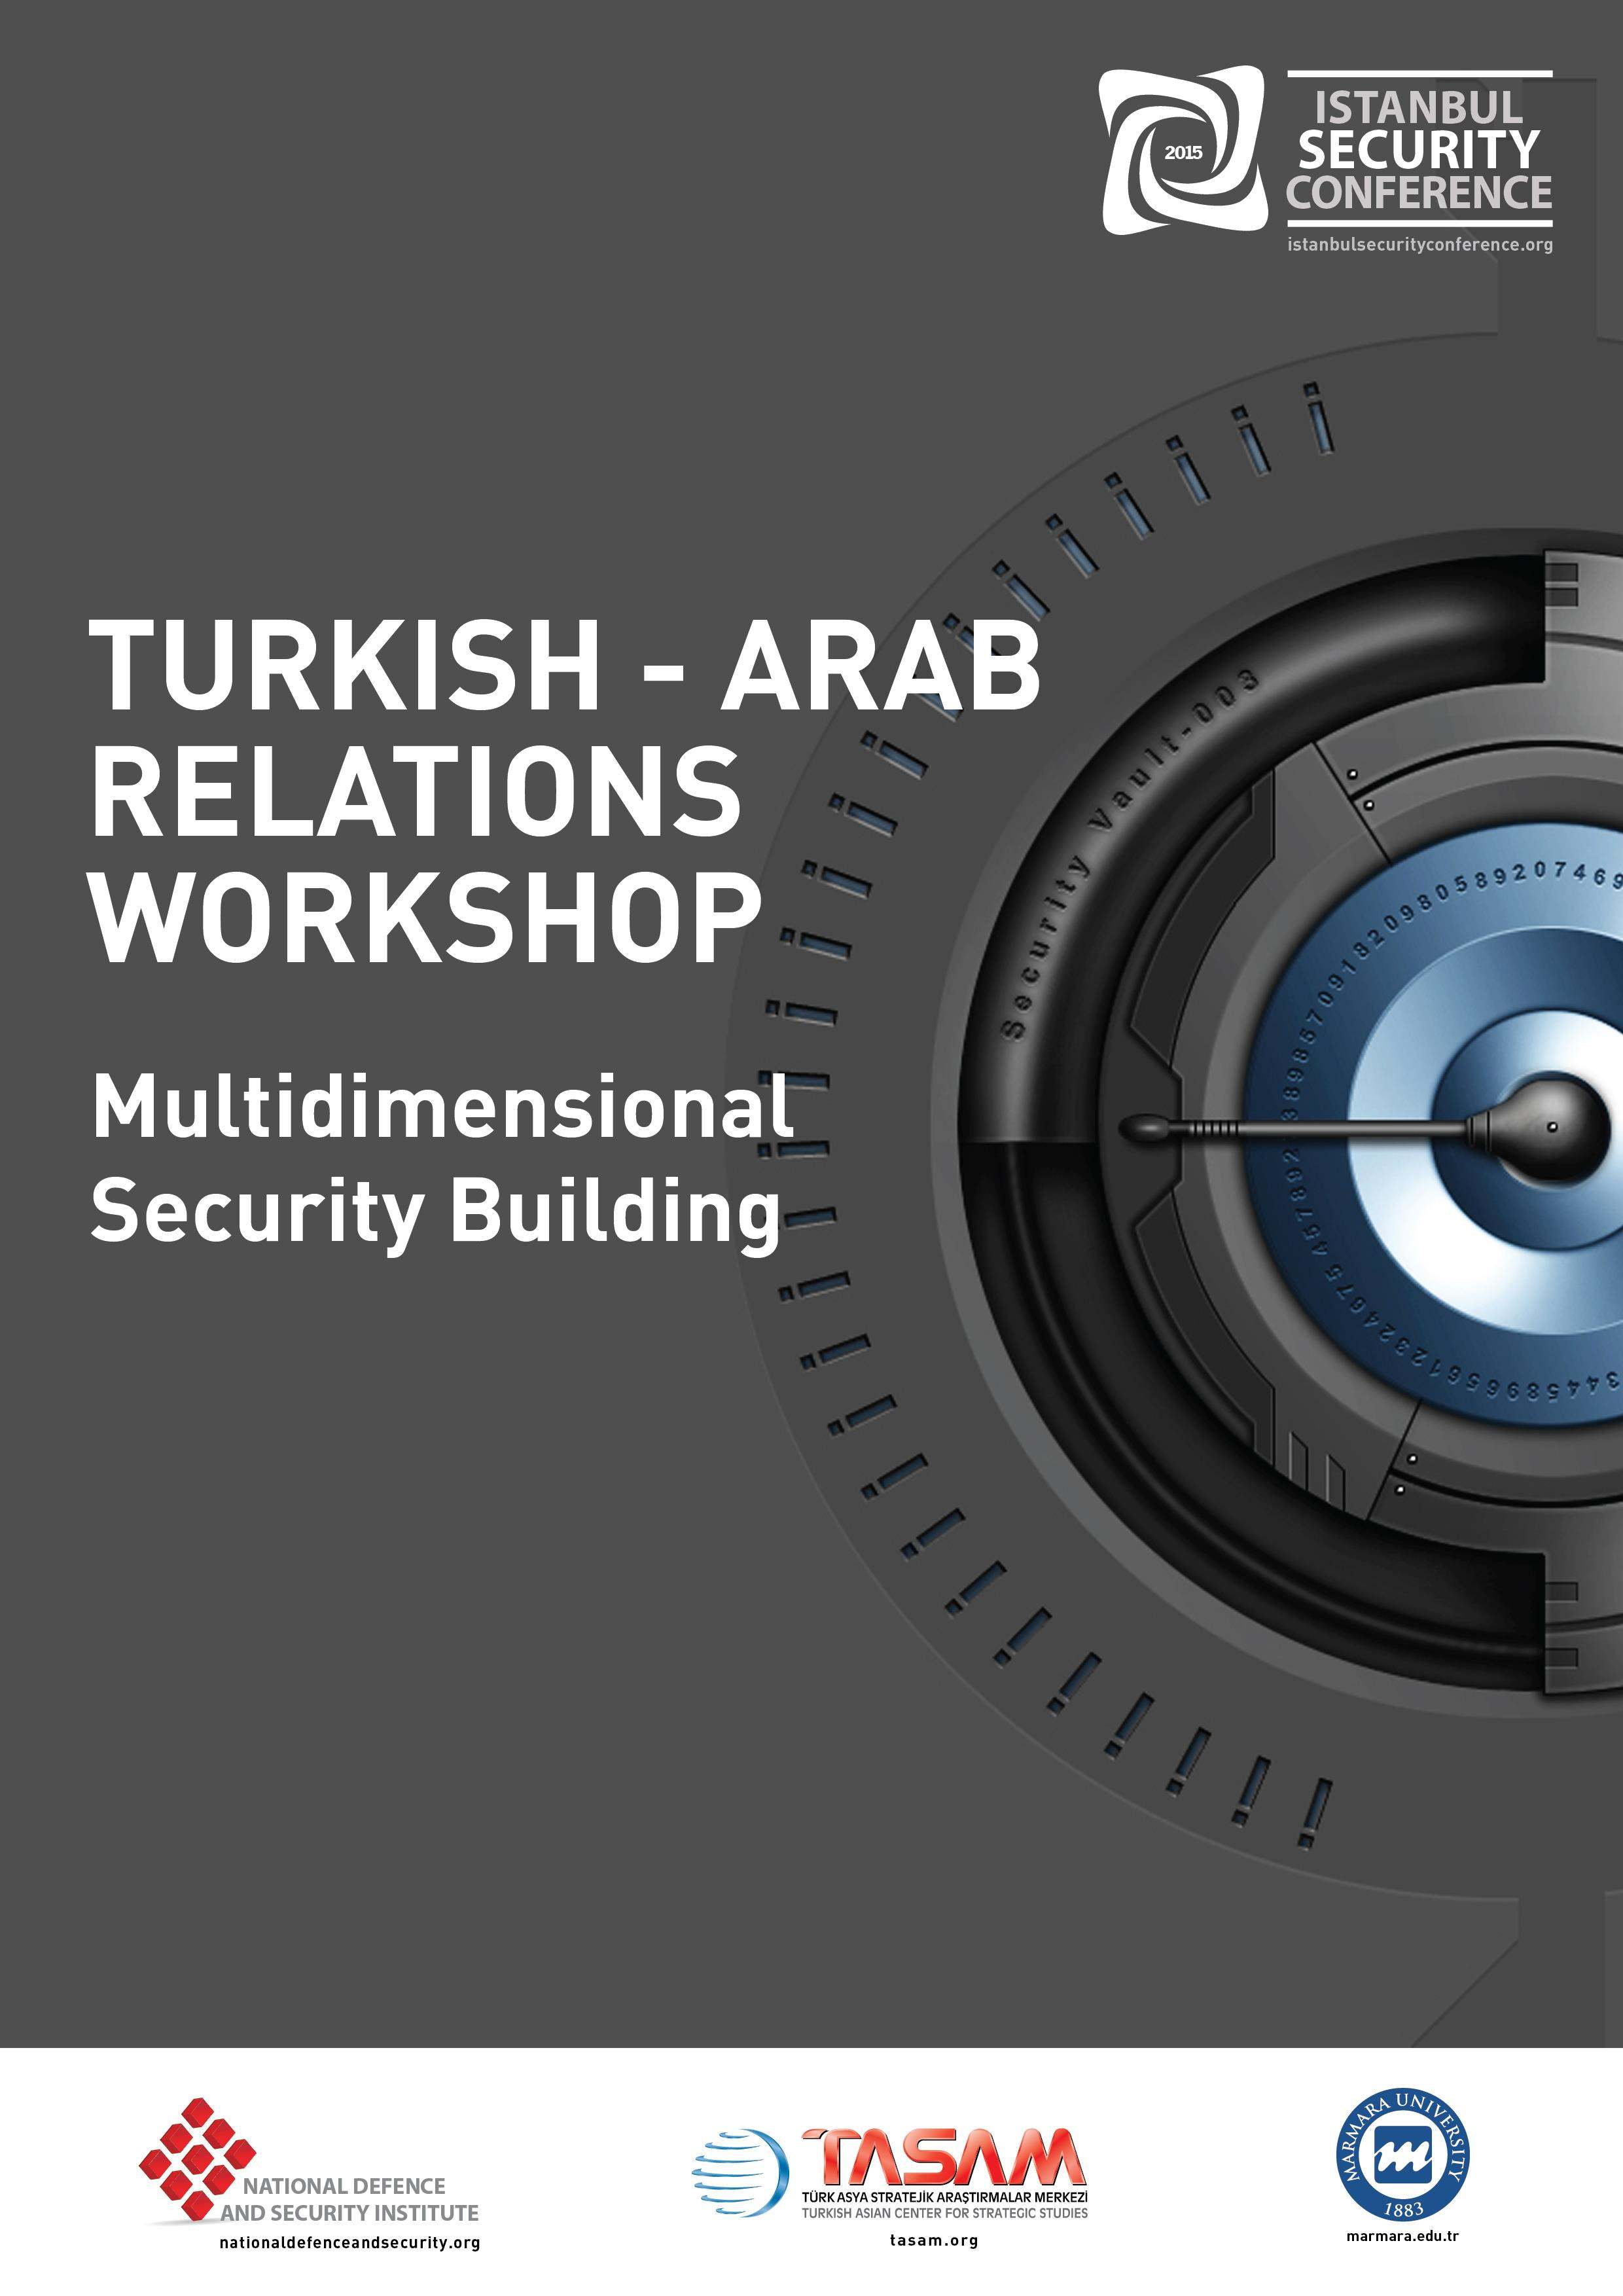 Turkish - Arab Relations Workshop | Istanbul Security Conference 2015